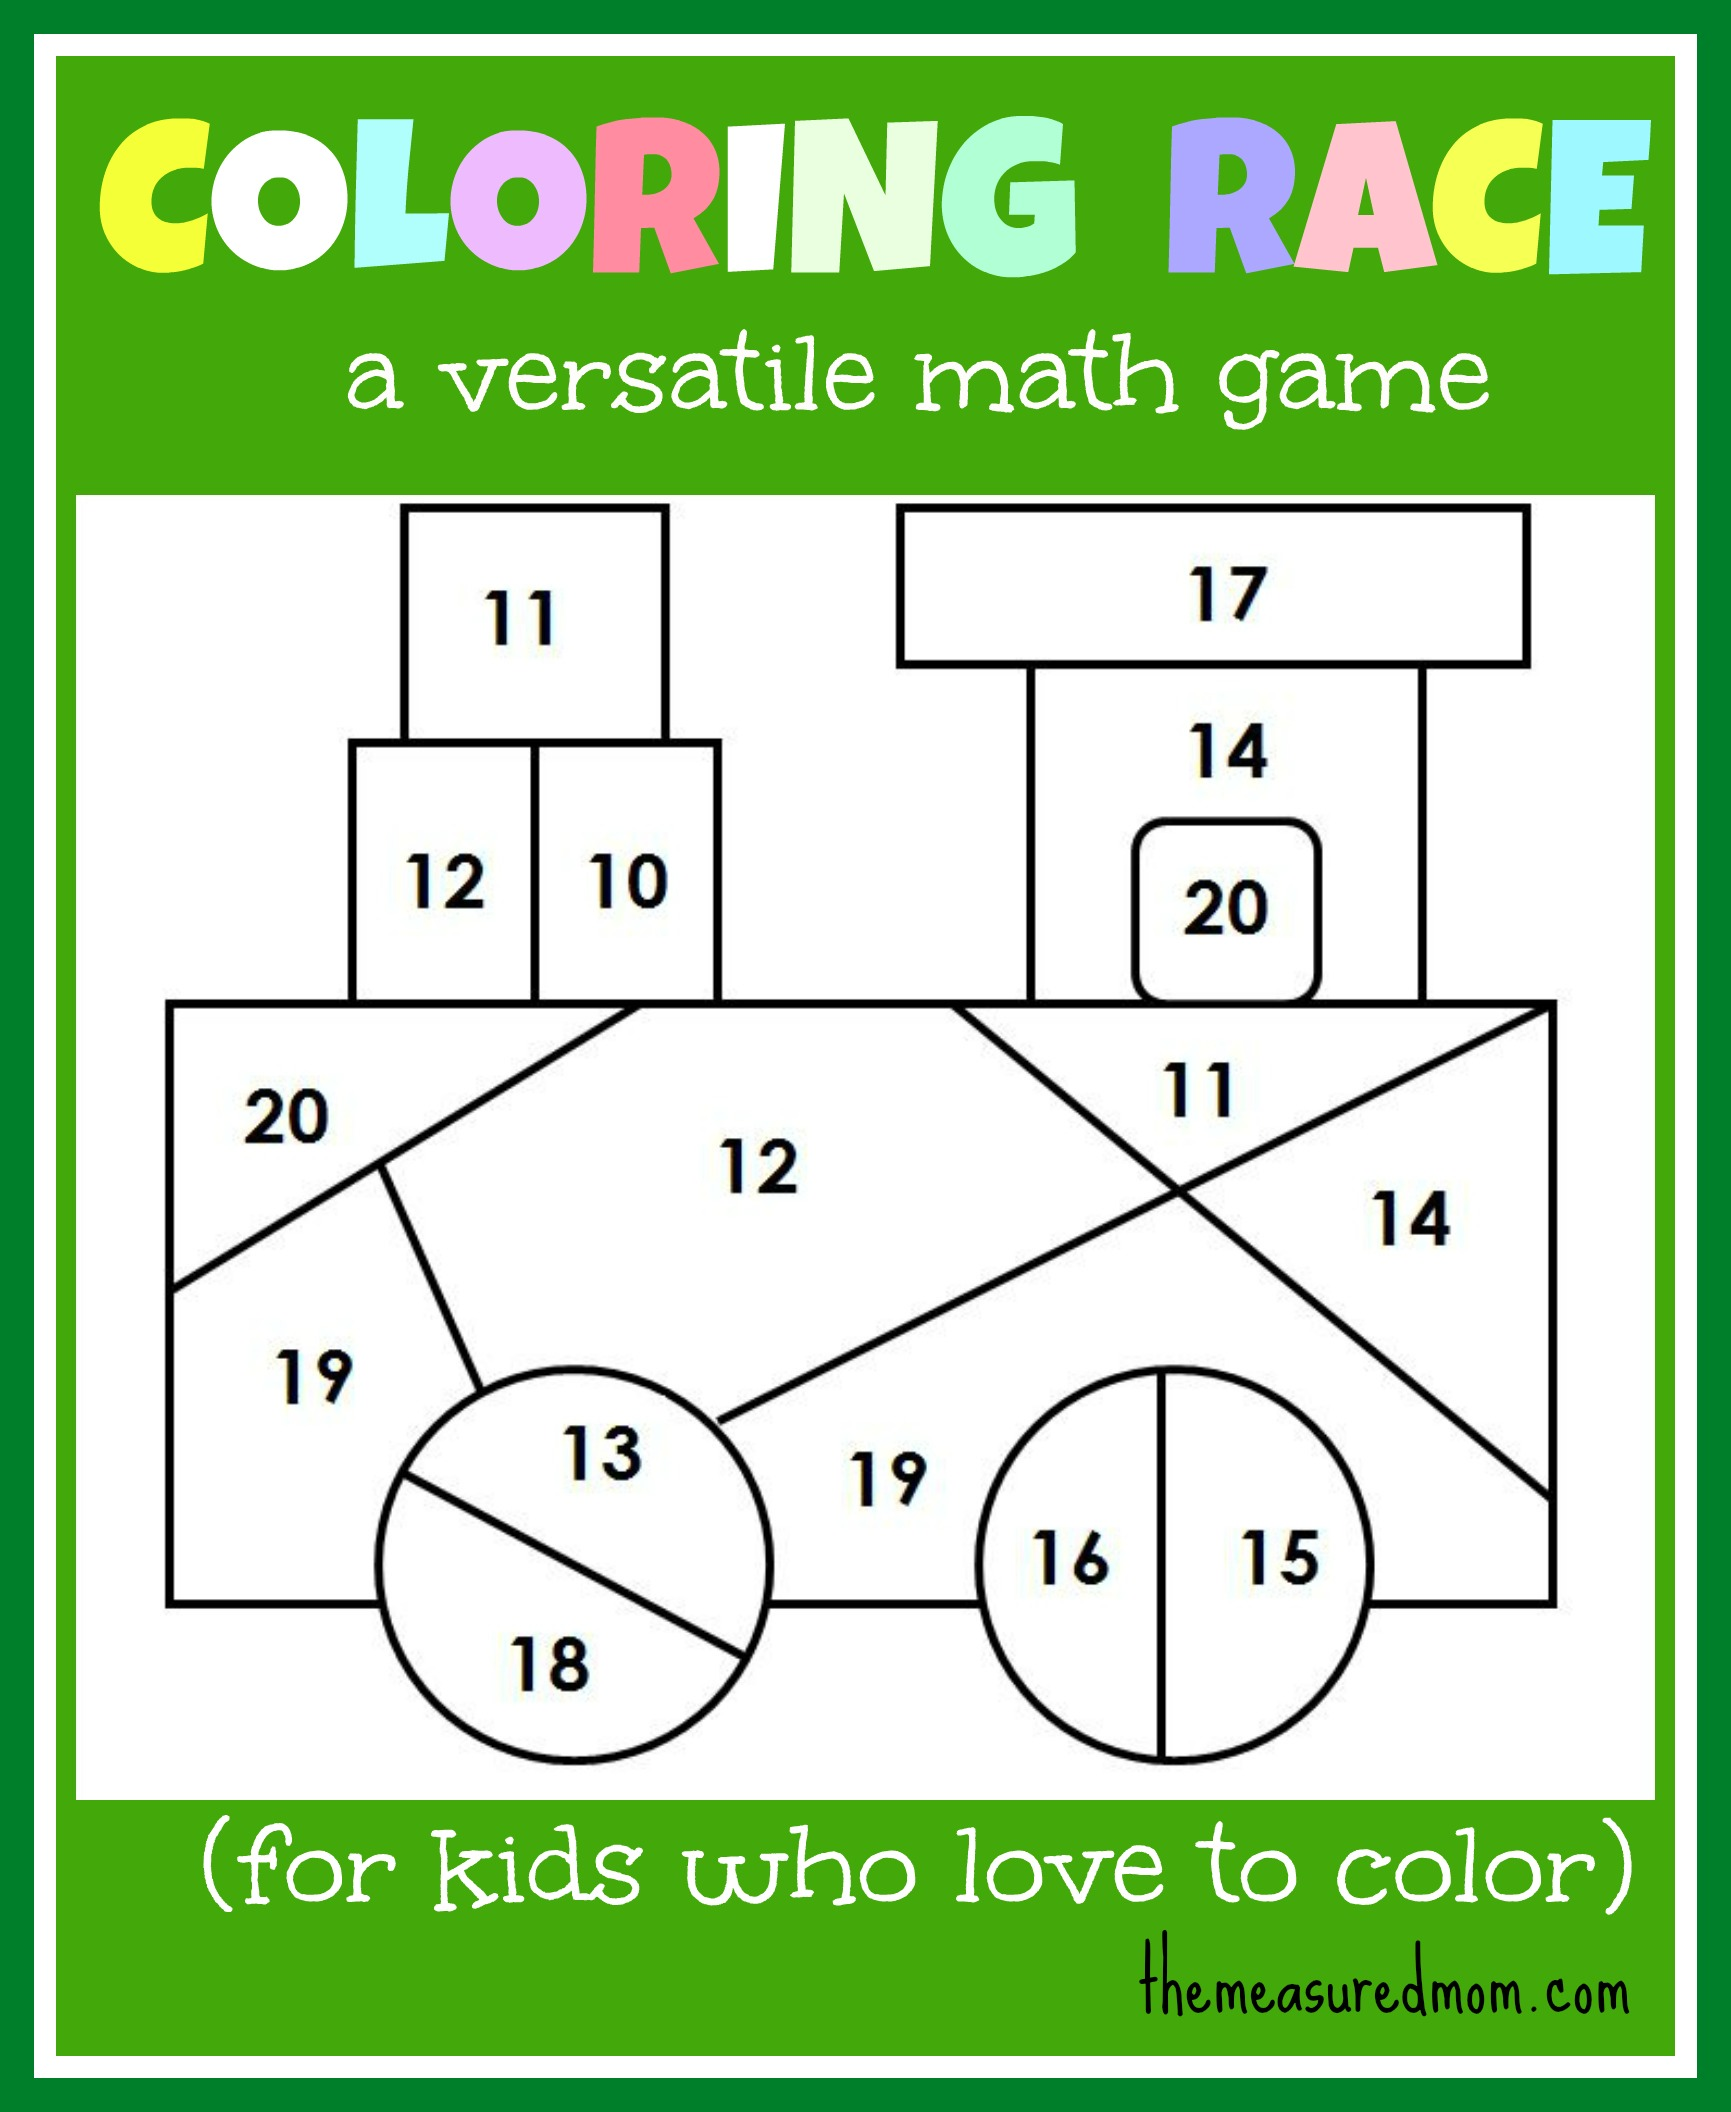 hight resolution of Math game for kids: Coloring Race combines math and coloring - The Measured  Mom